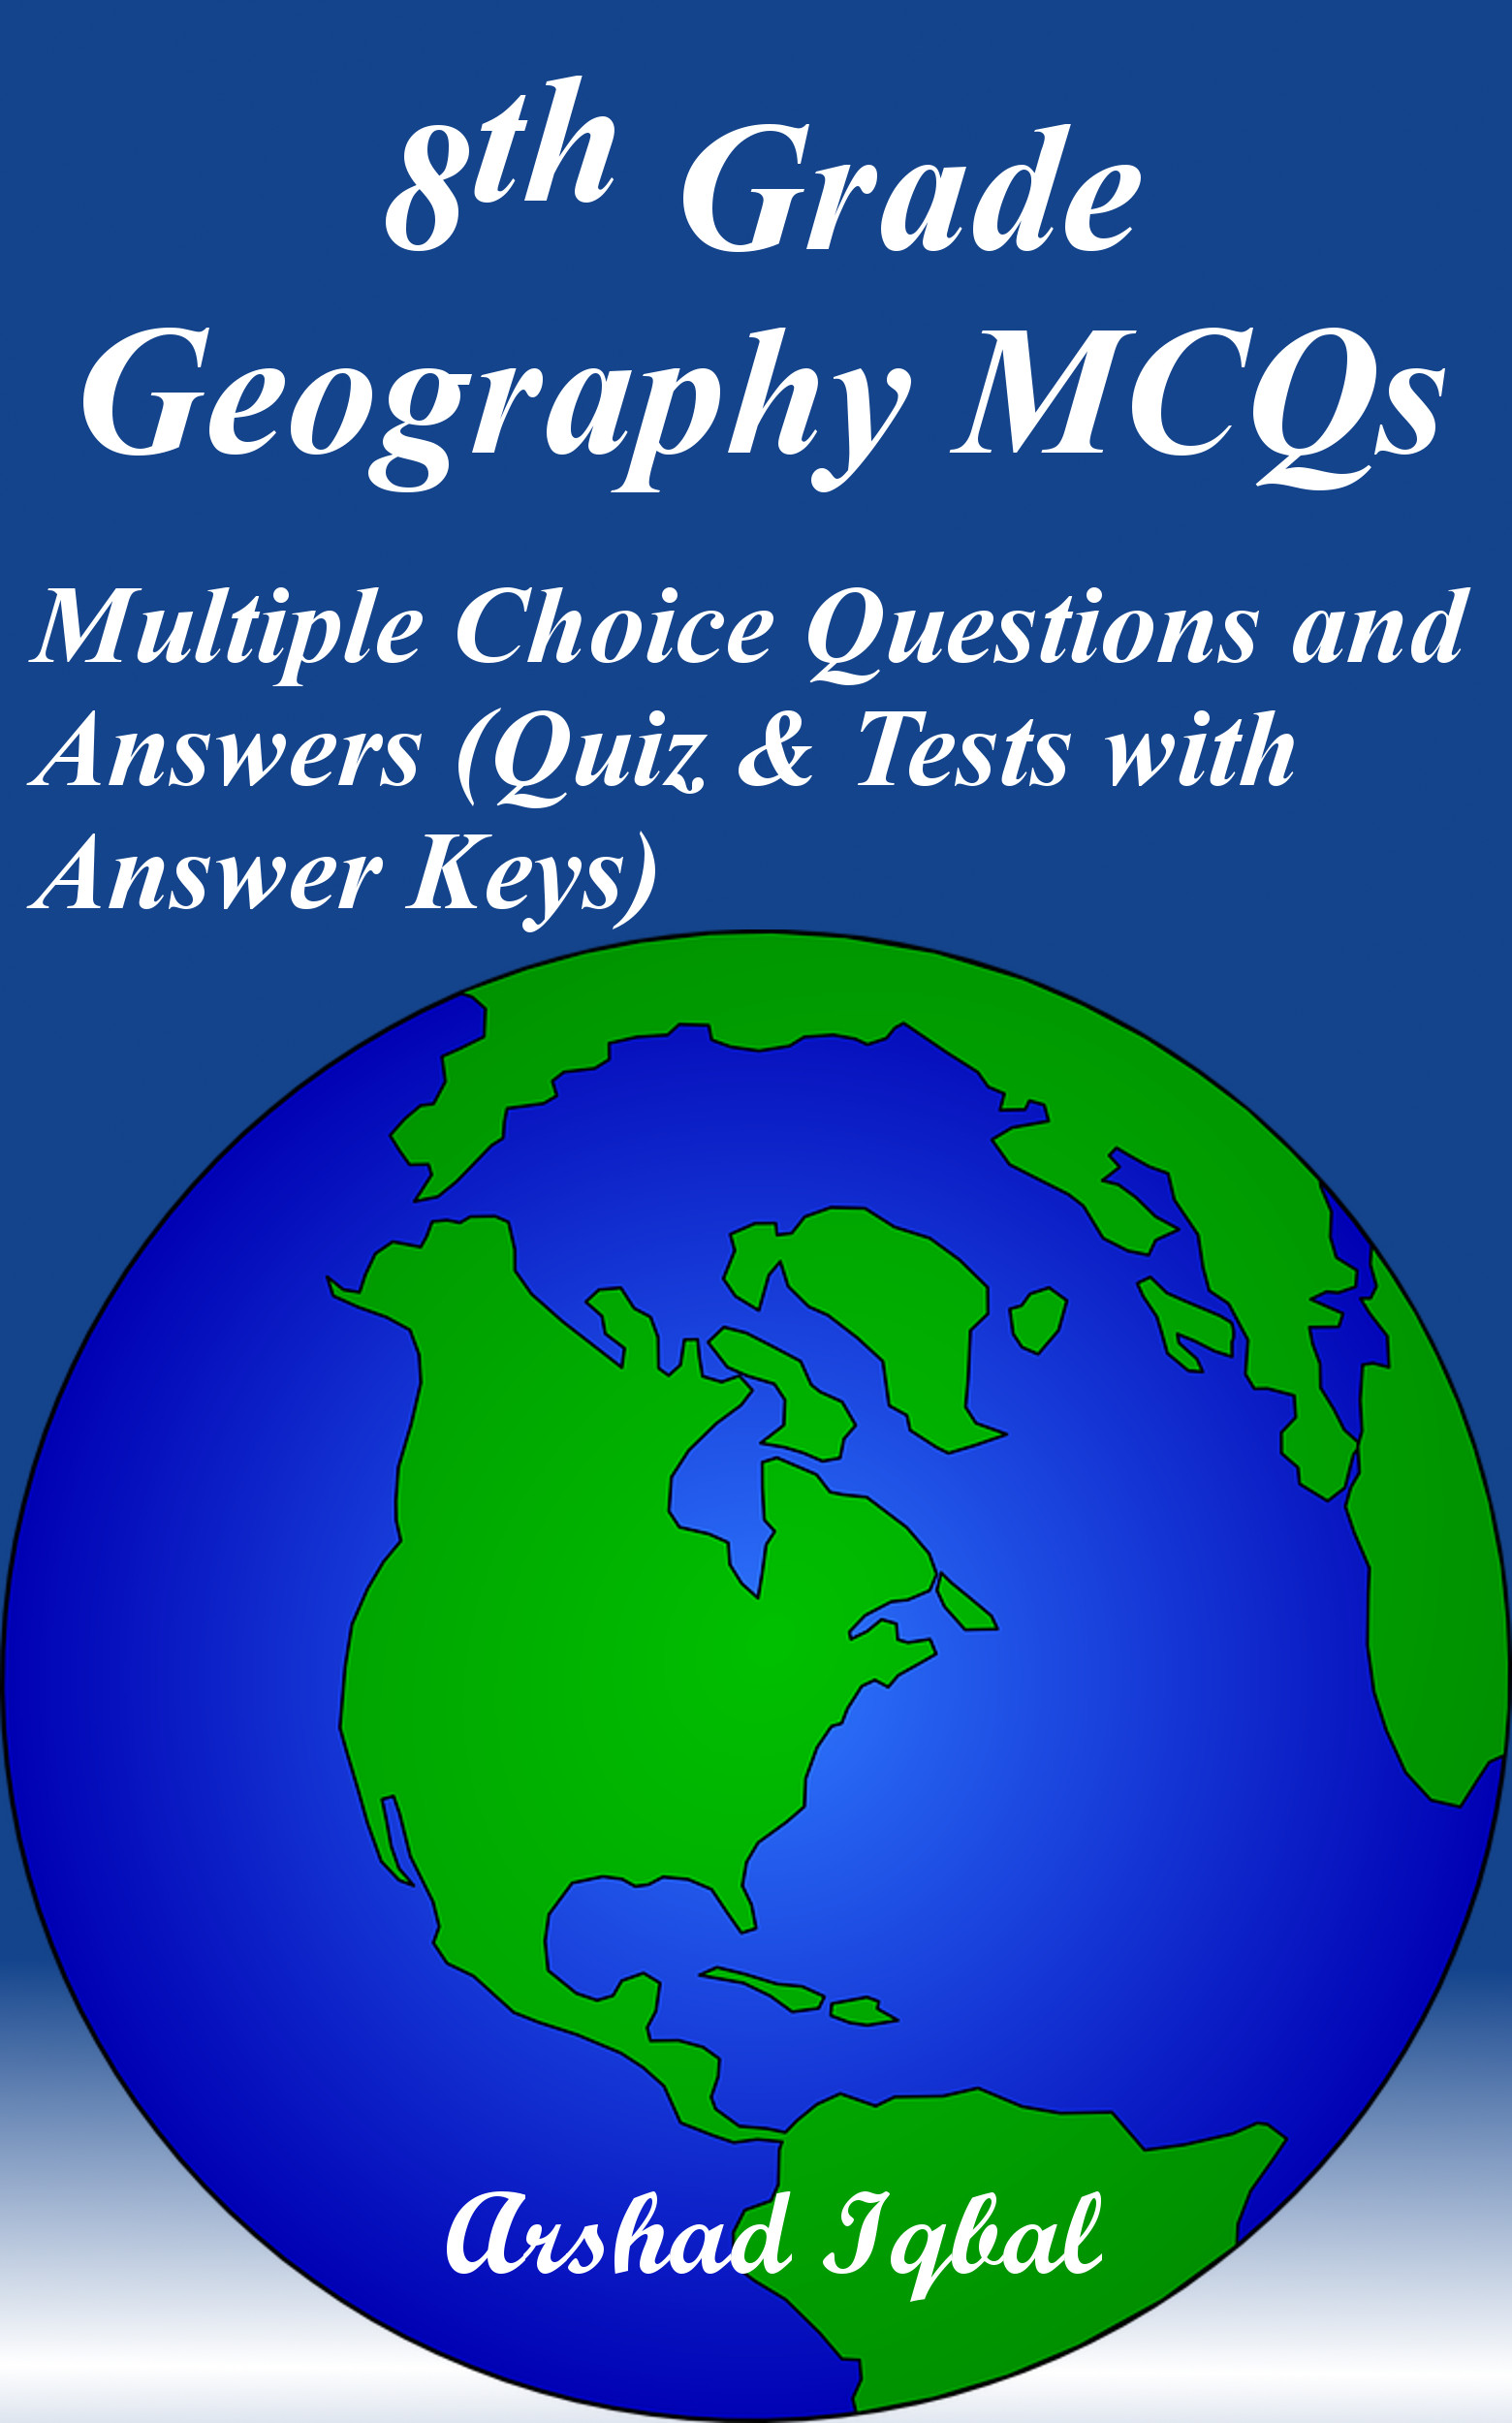 Grade 8 Geography MCQs: Multiple Choice Questions and Answers (Quiz & Tests with Answer Keys)